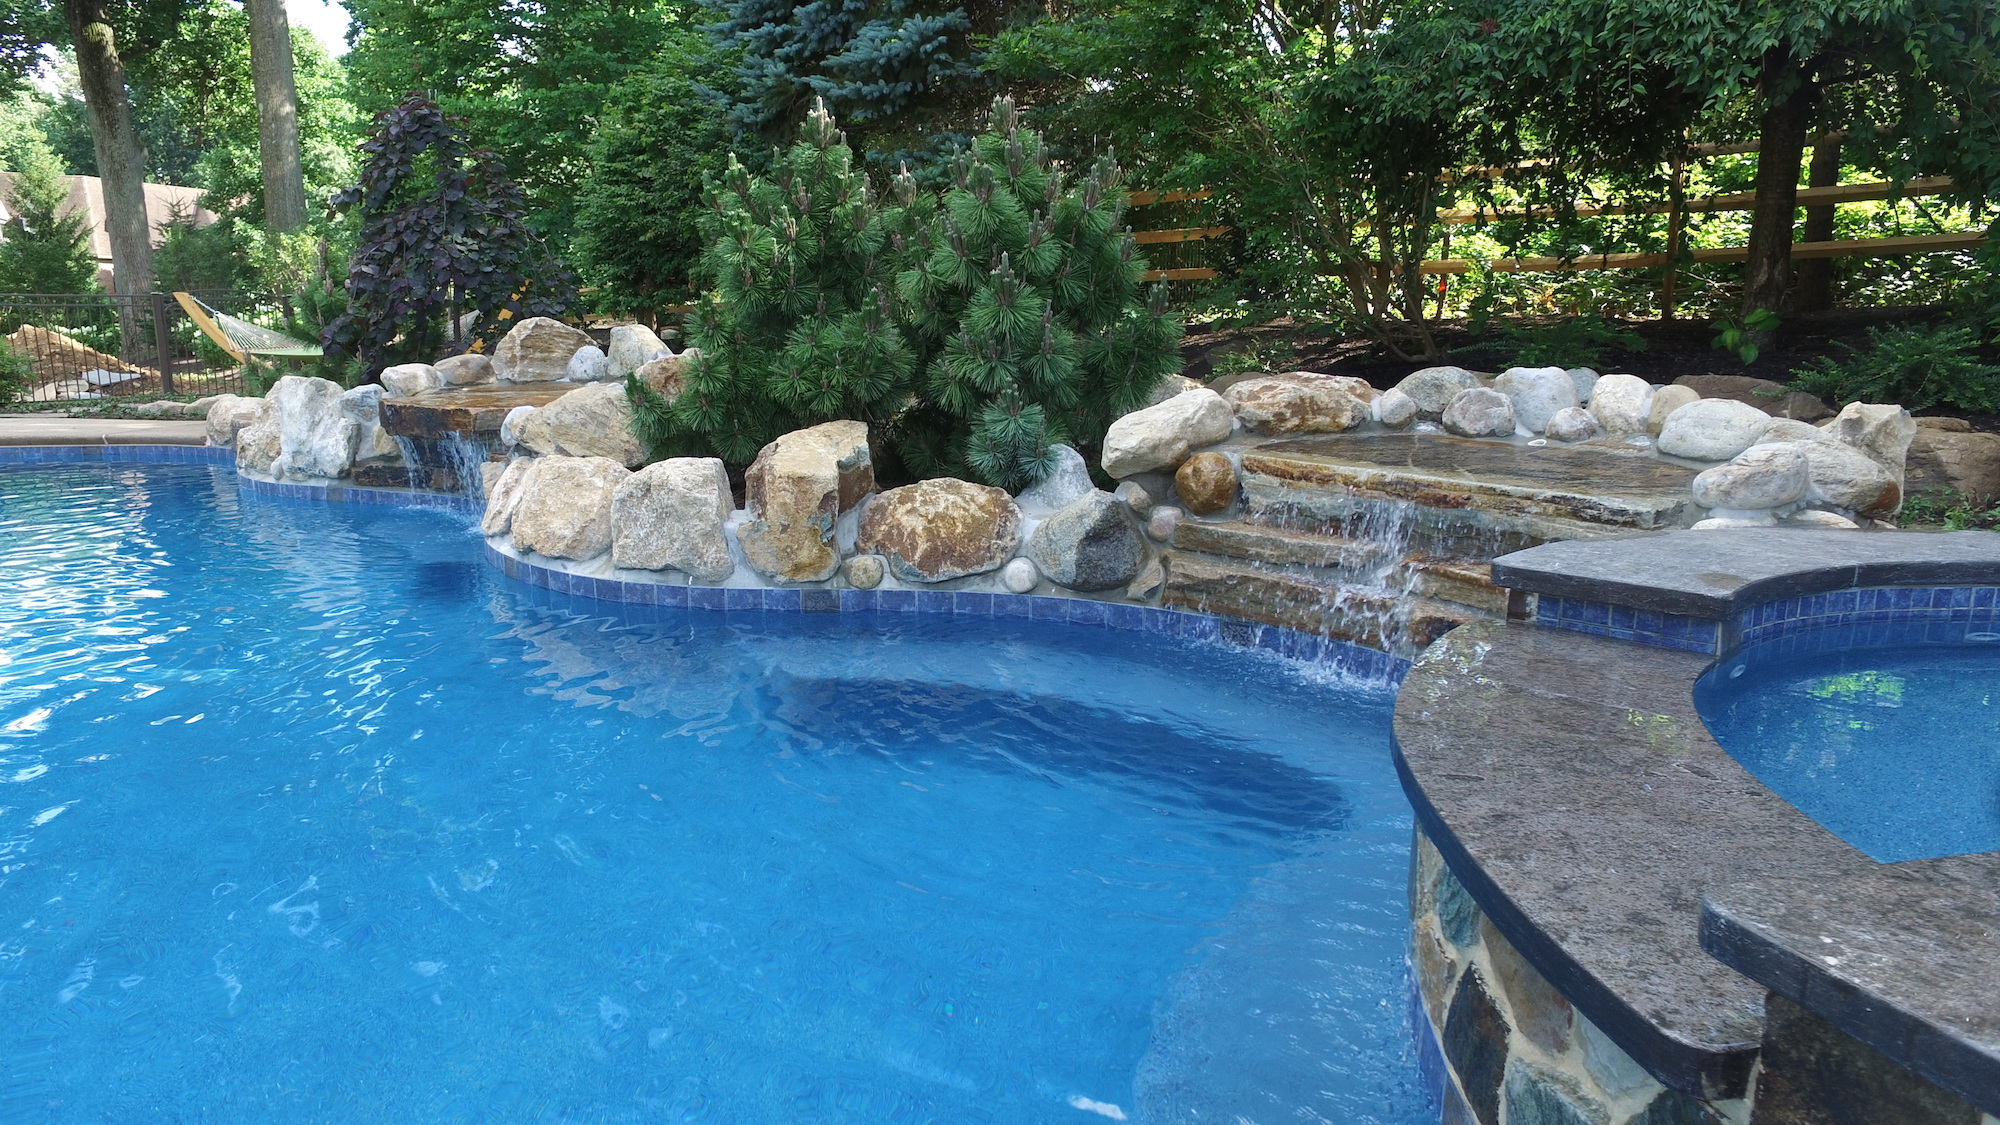 Wet edge products sapphire treasure - Crystal clear pools ...